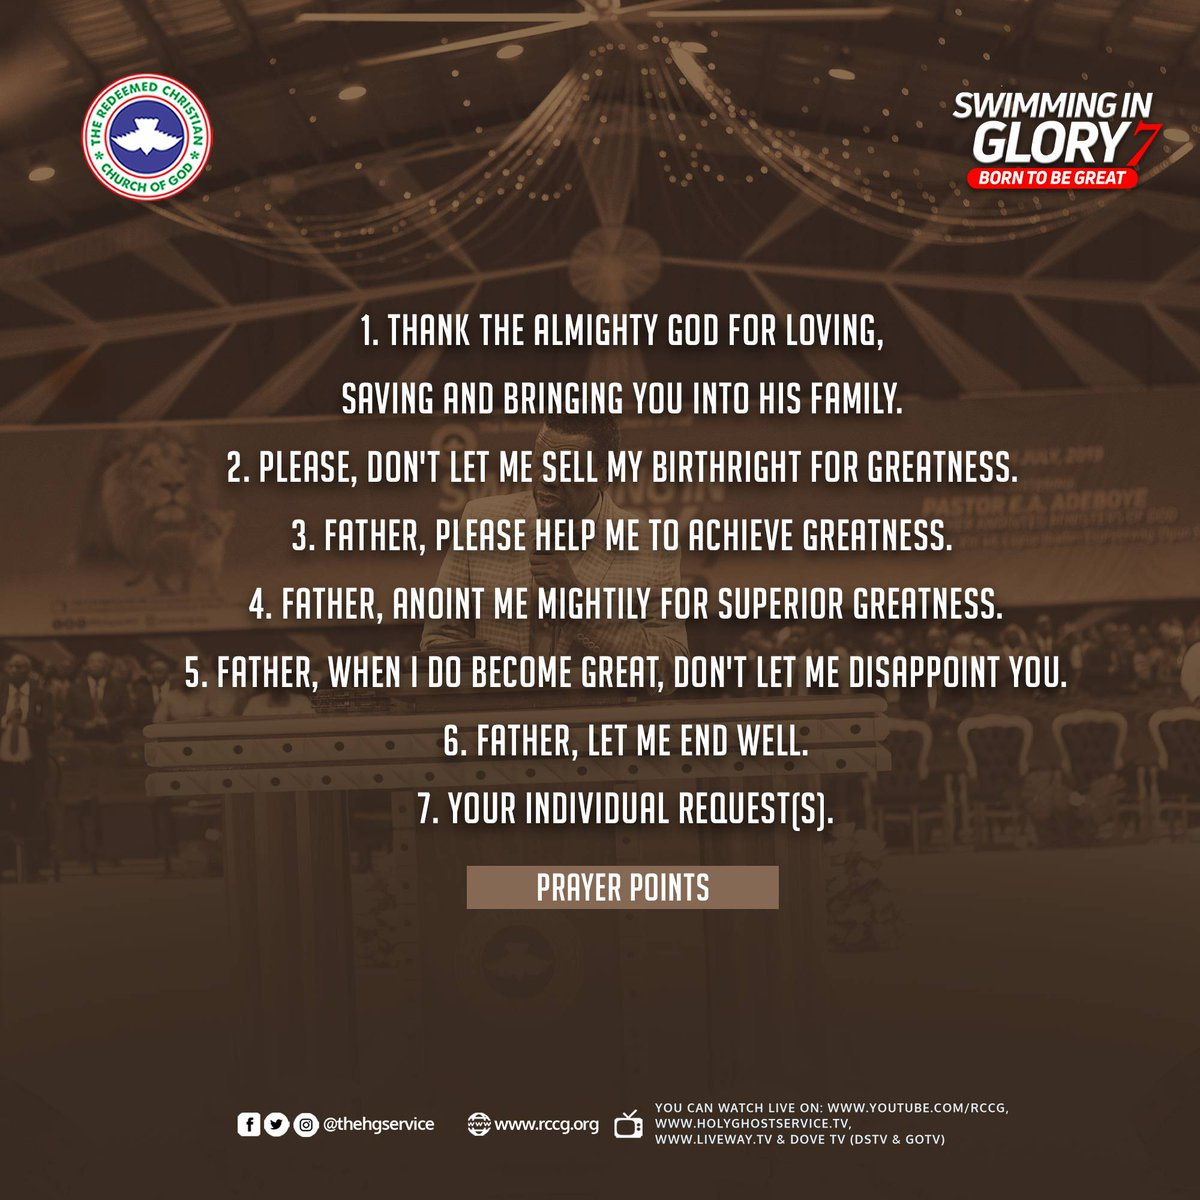 Holy Ghost Service on Twitter: